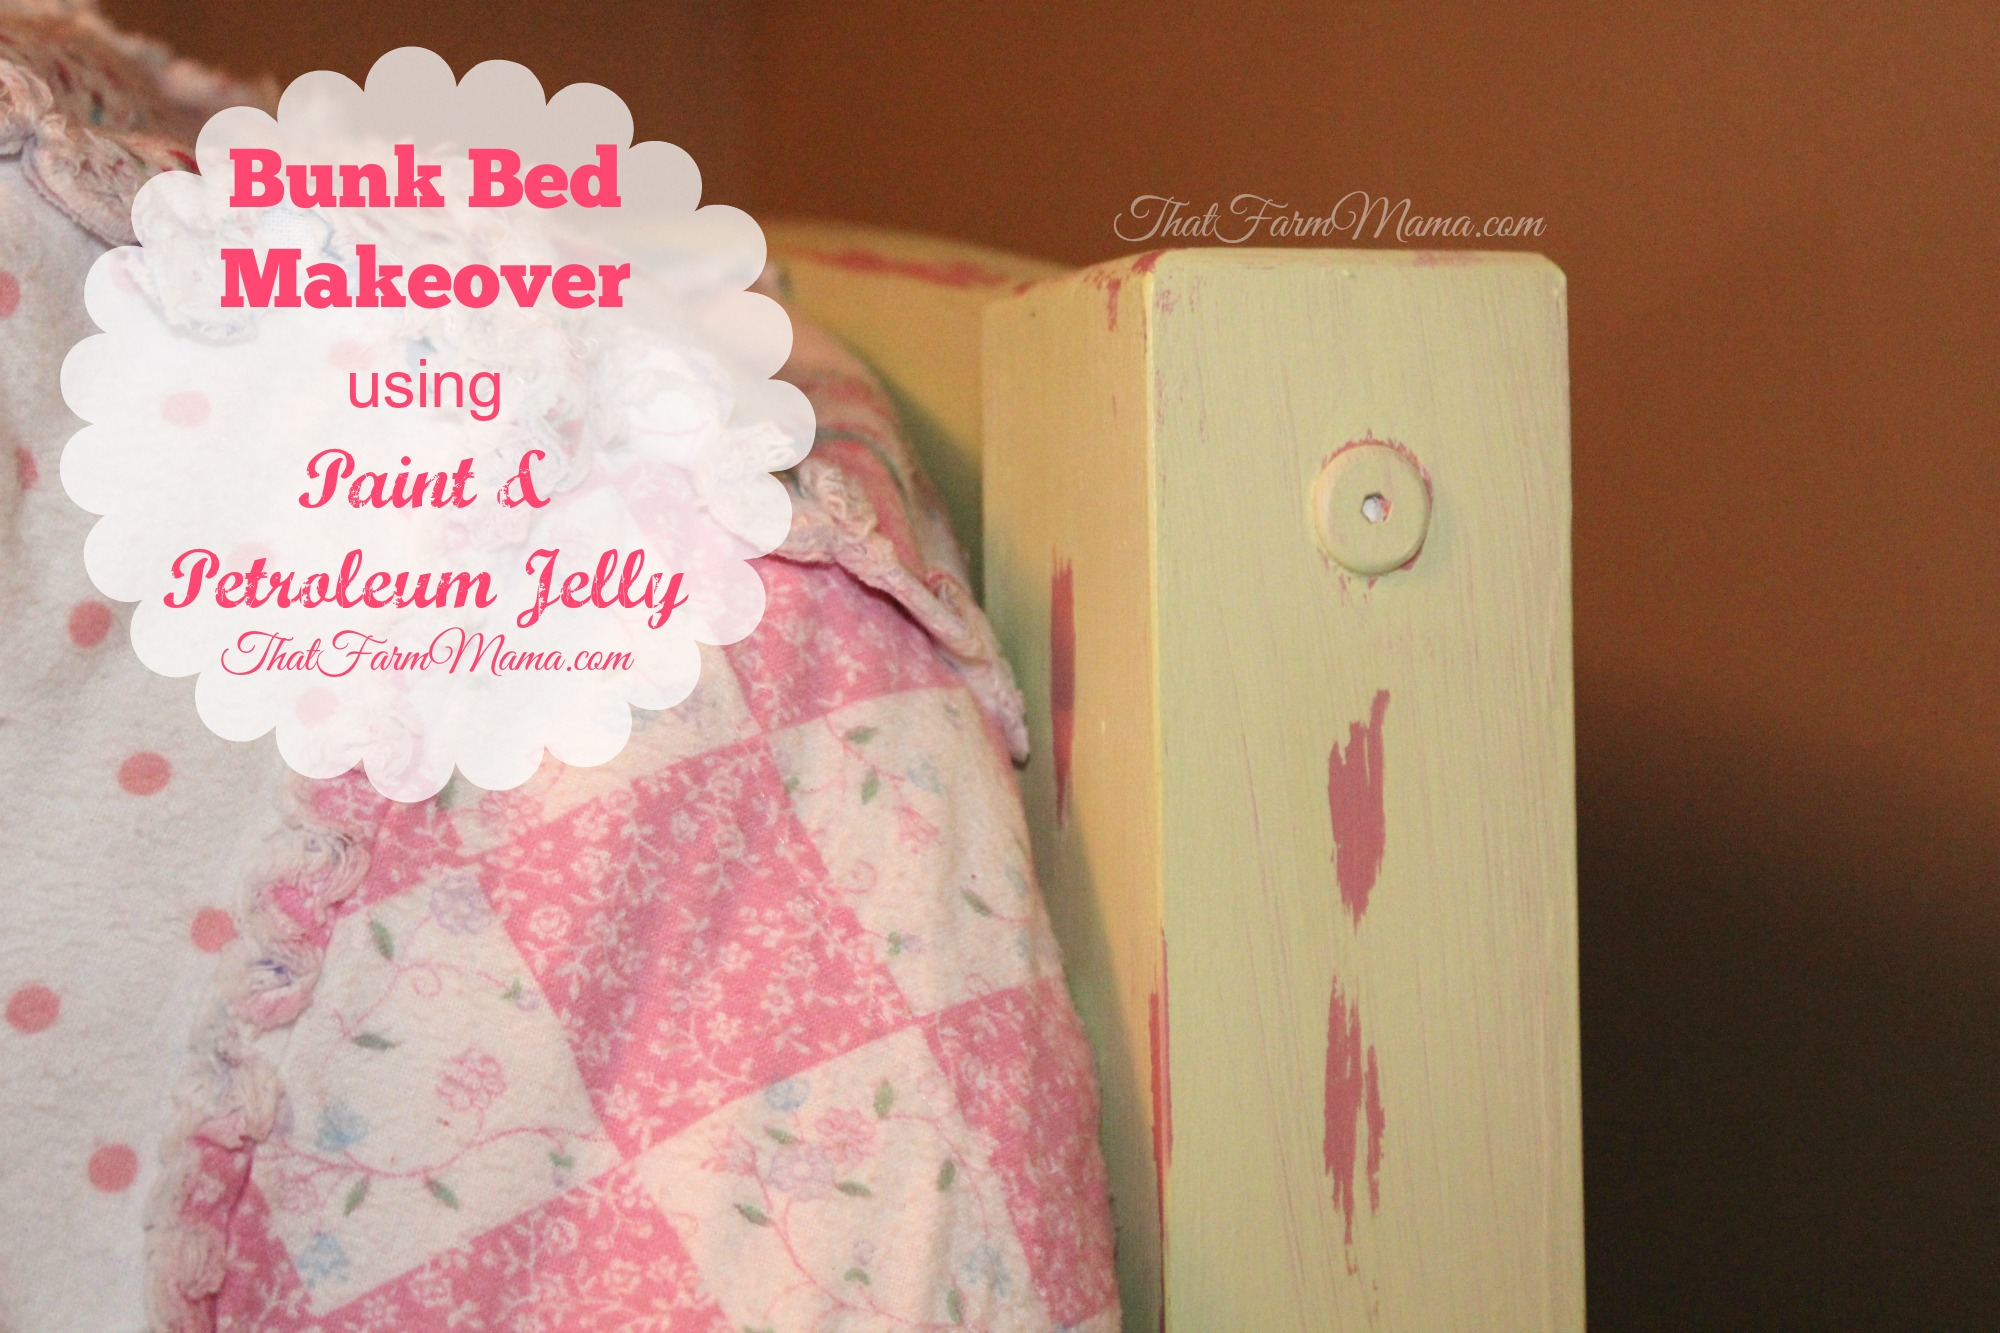 Bunk Bed Makeover Using Paint and Petroleum Jelly